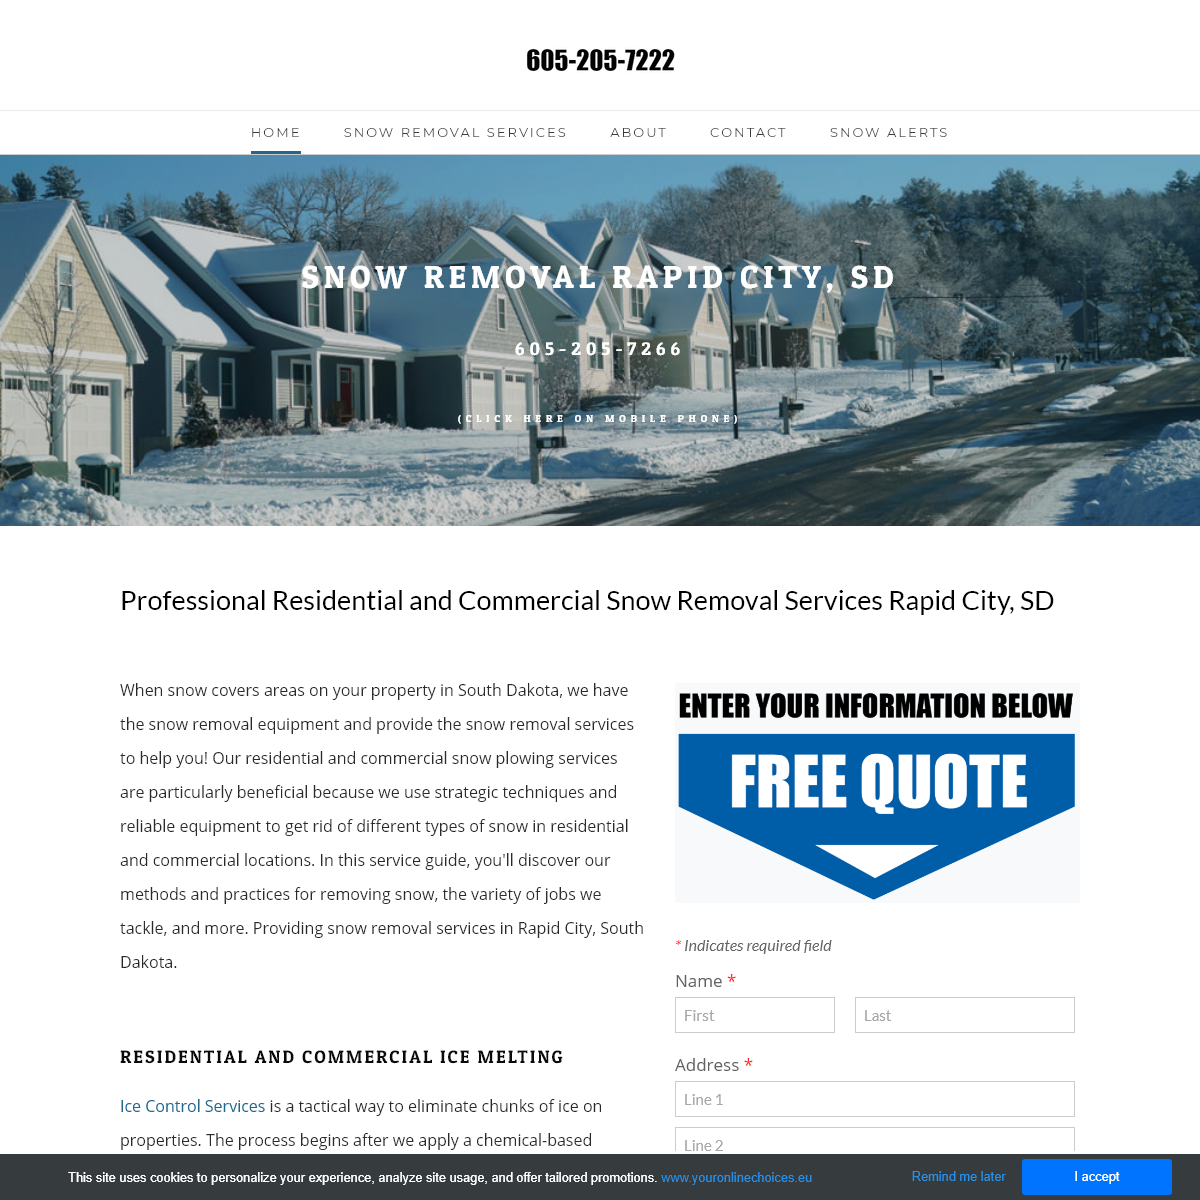 Residential and Commercial Snow Removal - Rapid City, SD